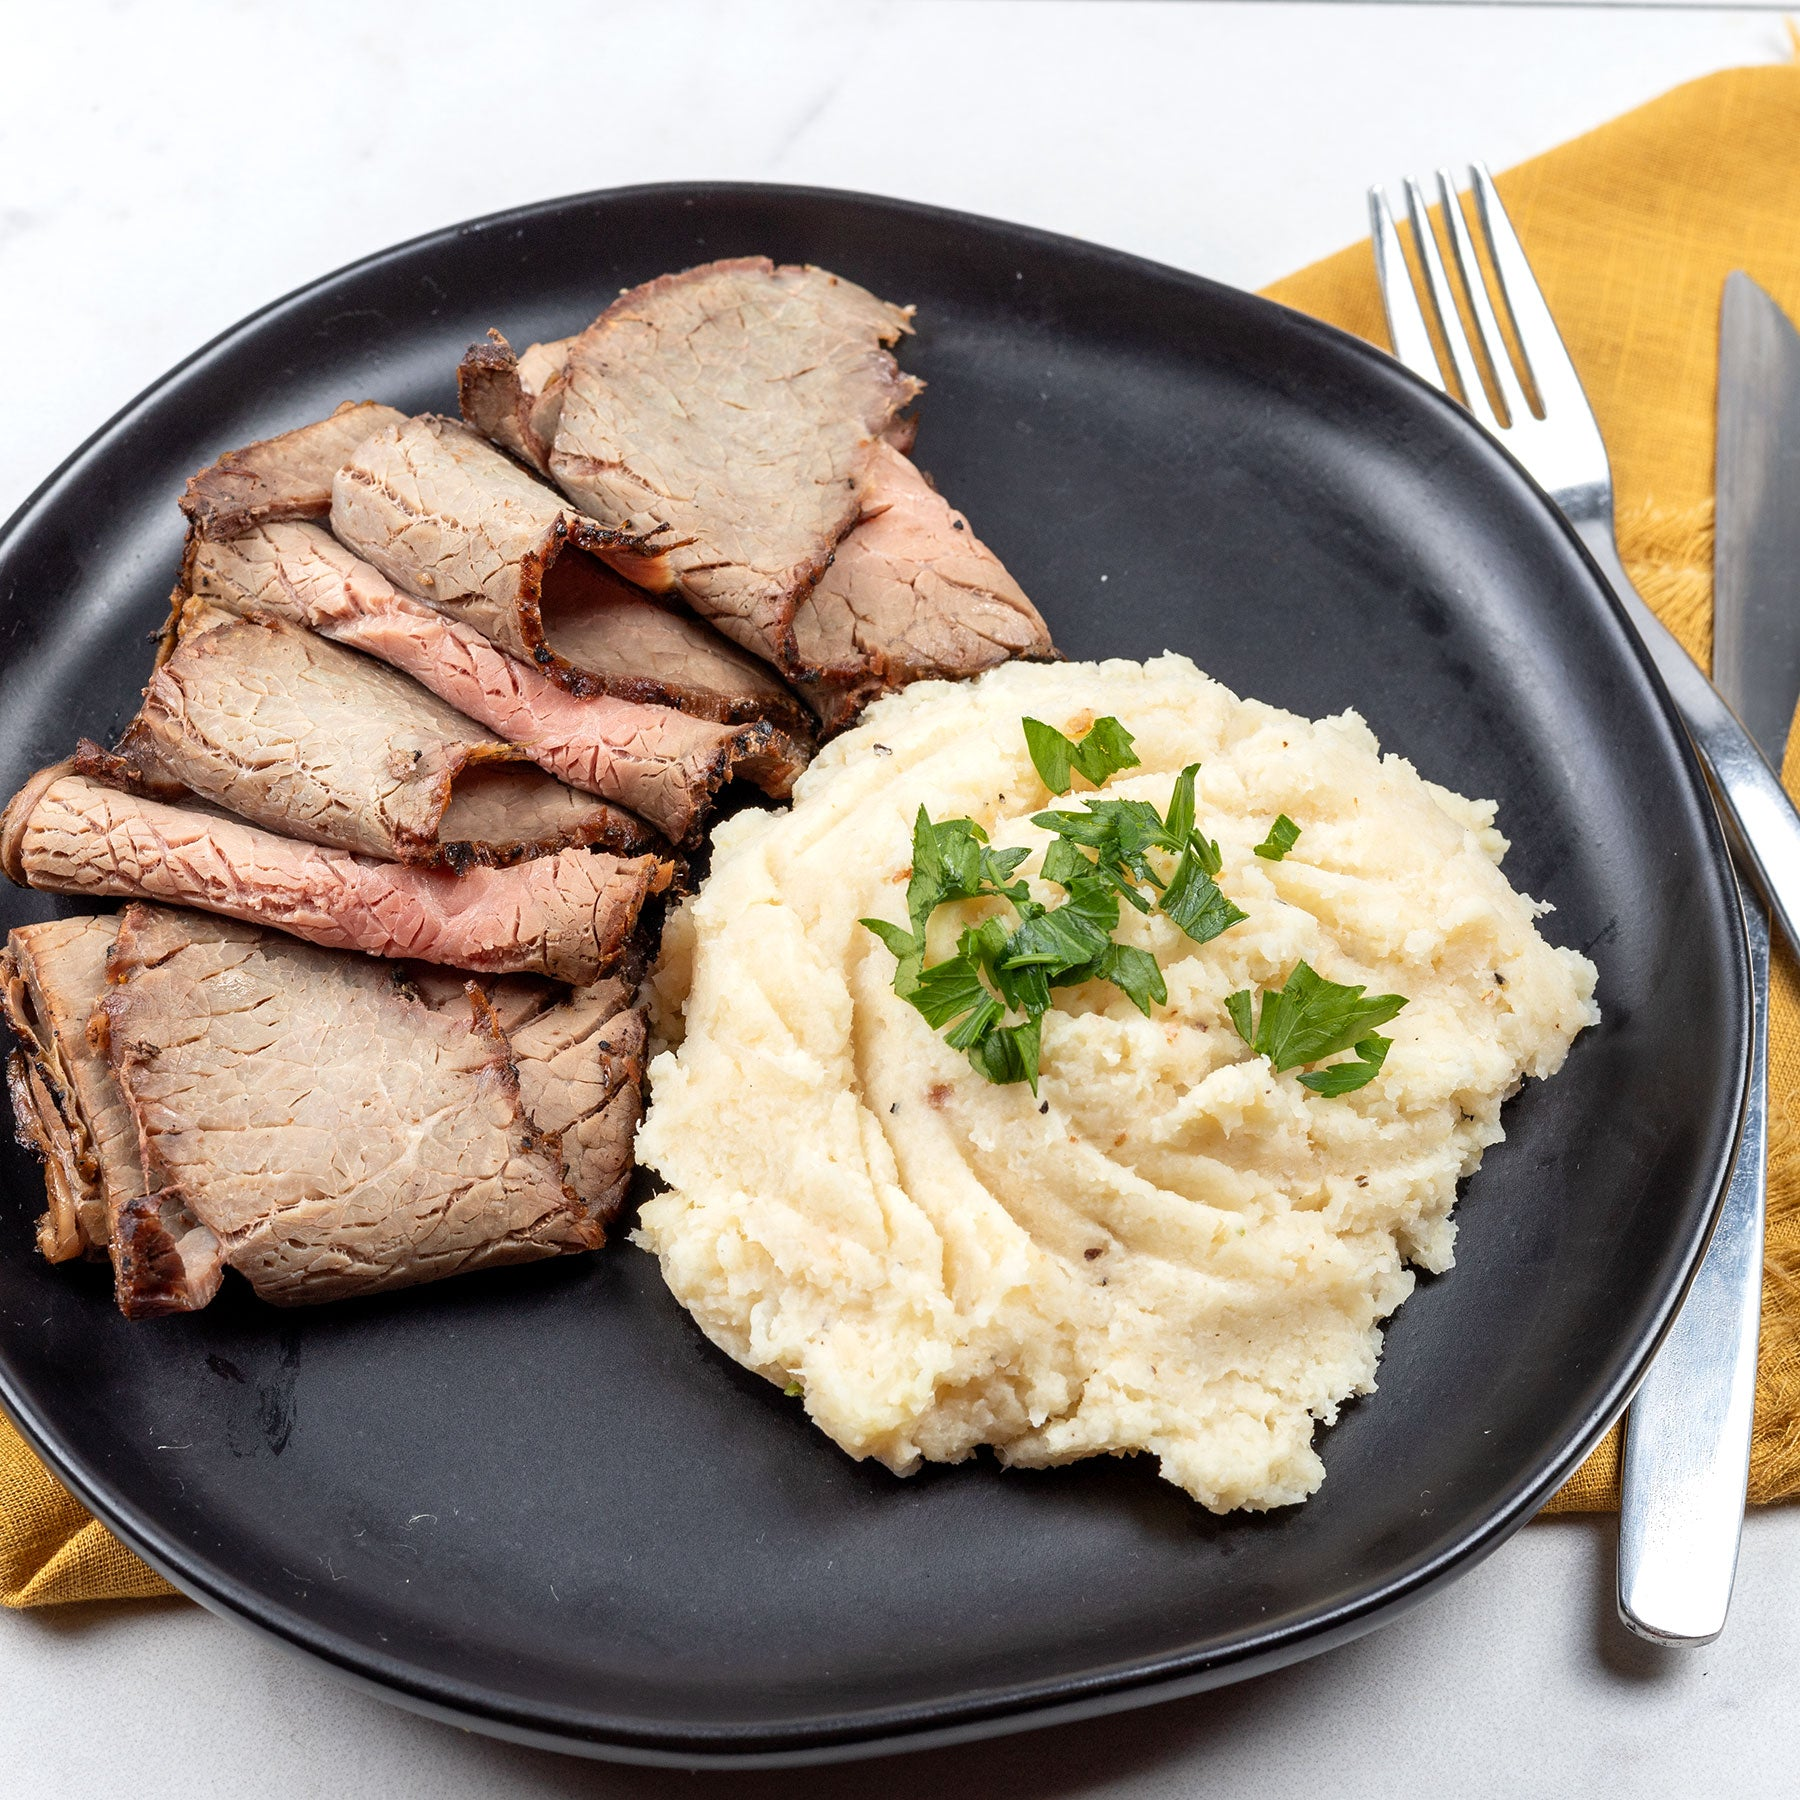 Grilled Steak and Keto Mash